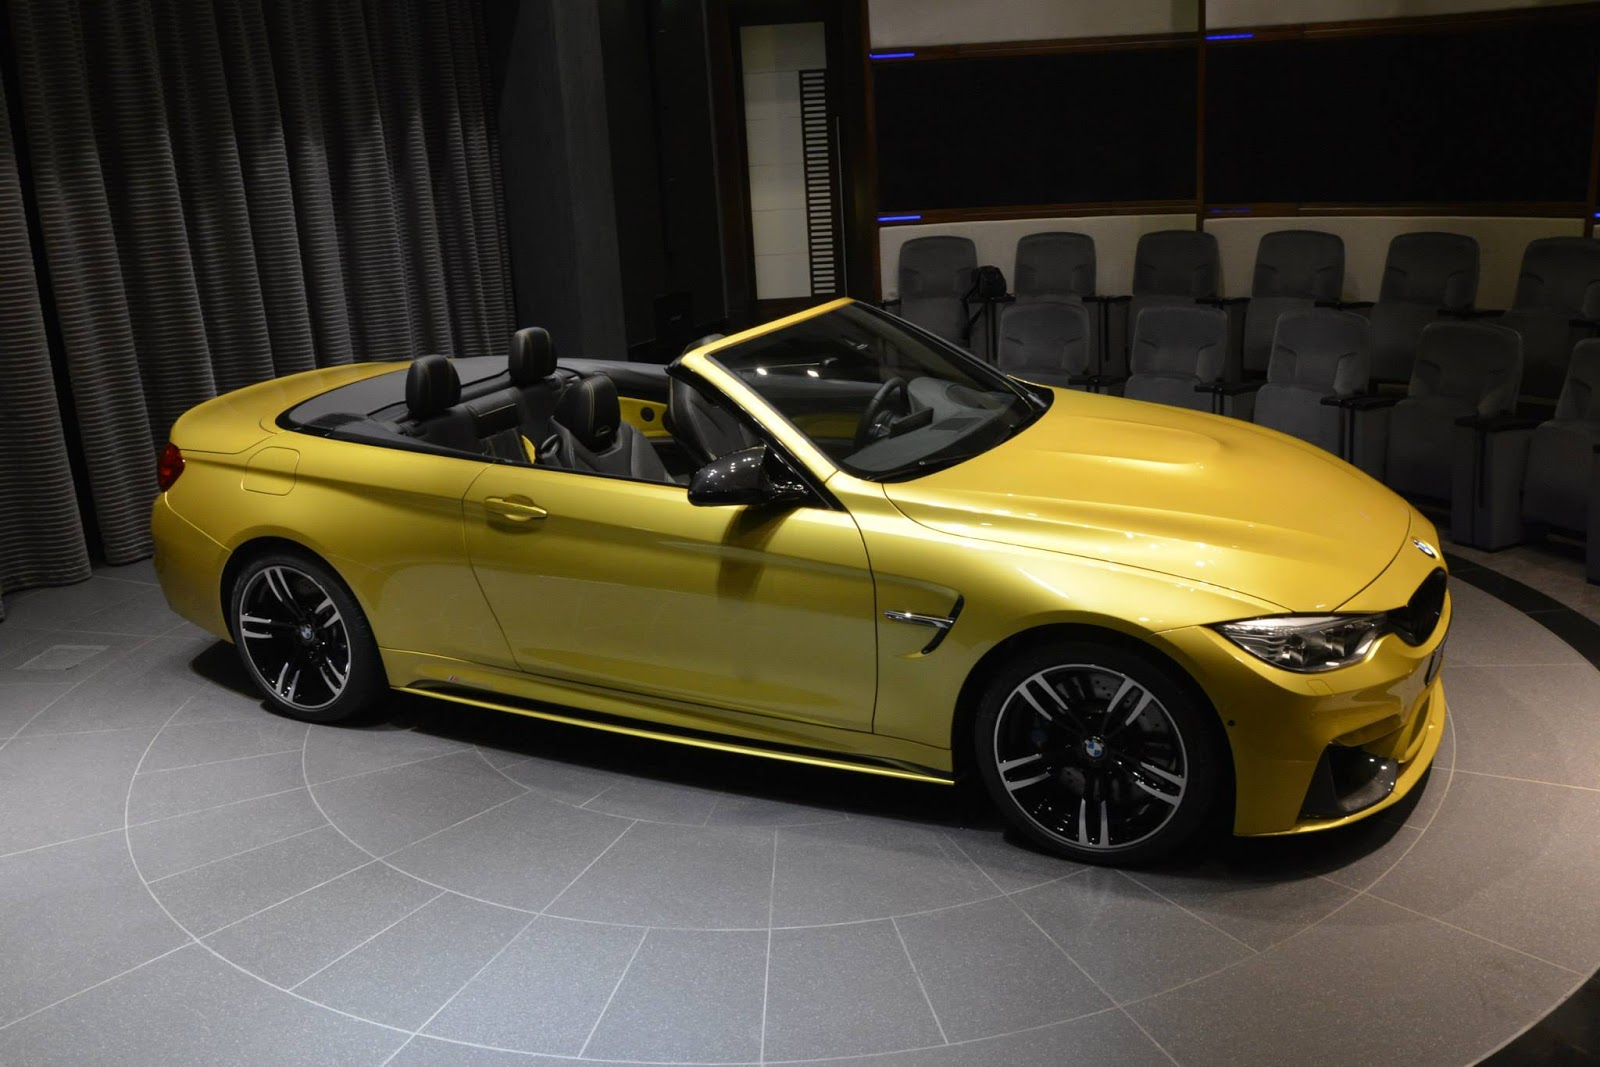 bmw abu dhabi 39 s customized m5 m4 cabrio and x5 50i carscoops. Black Bedroom Furniture Sets. Home Design Ideas